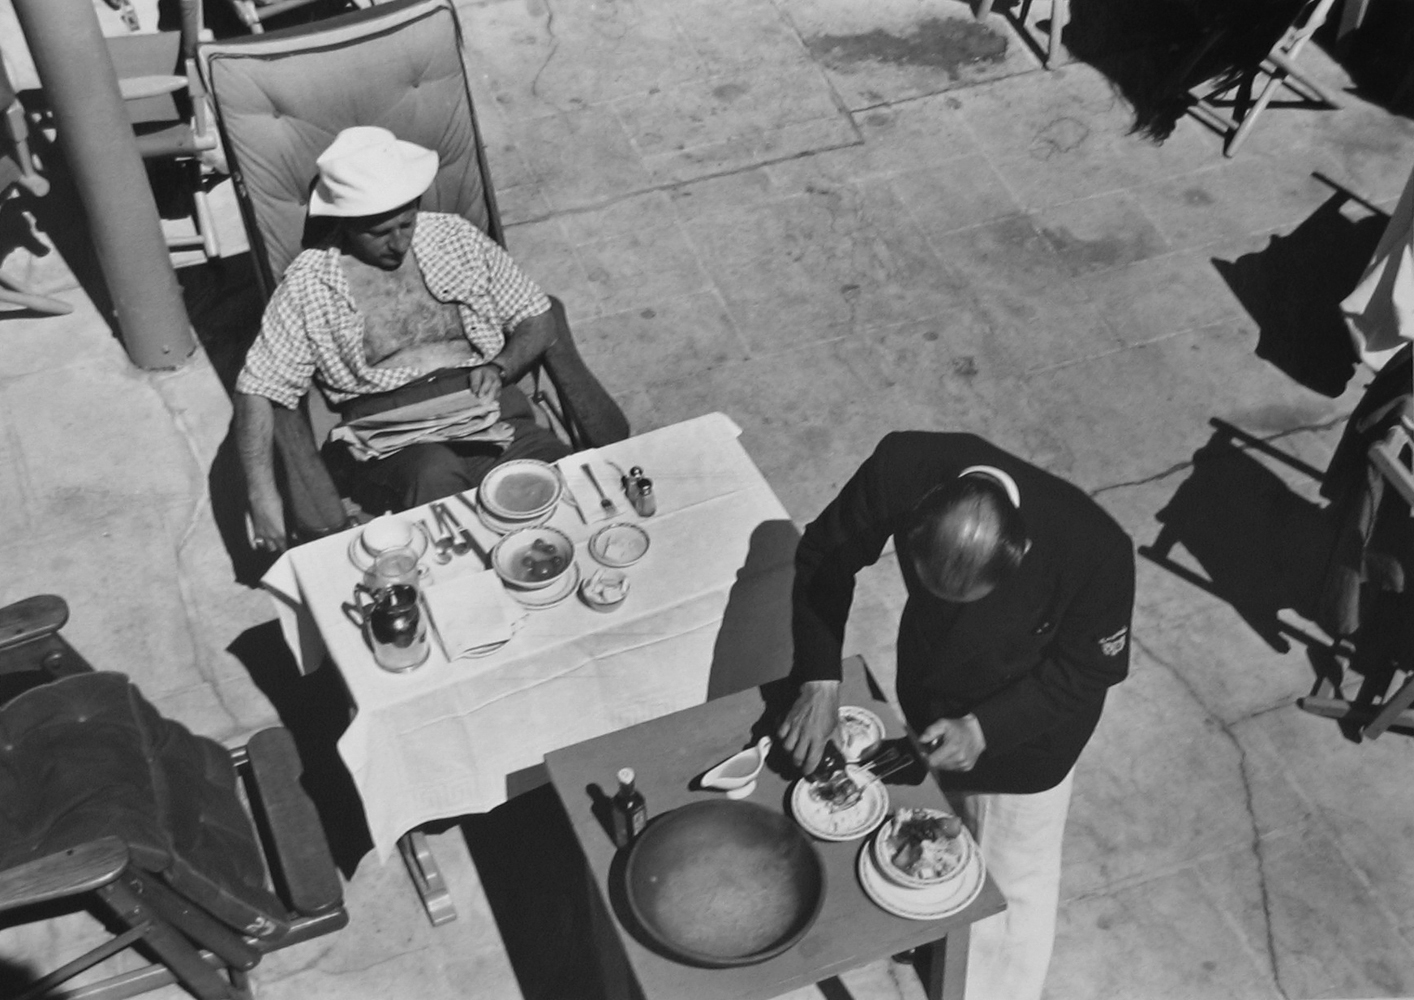 Marion Post Wolcott, Winter Visitor, Brunch, FL, 1939 gelatin silver print, 11 x 14 inches